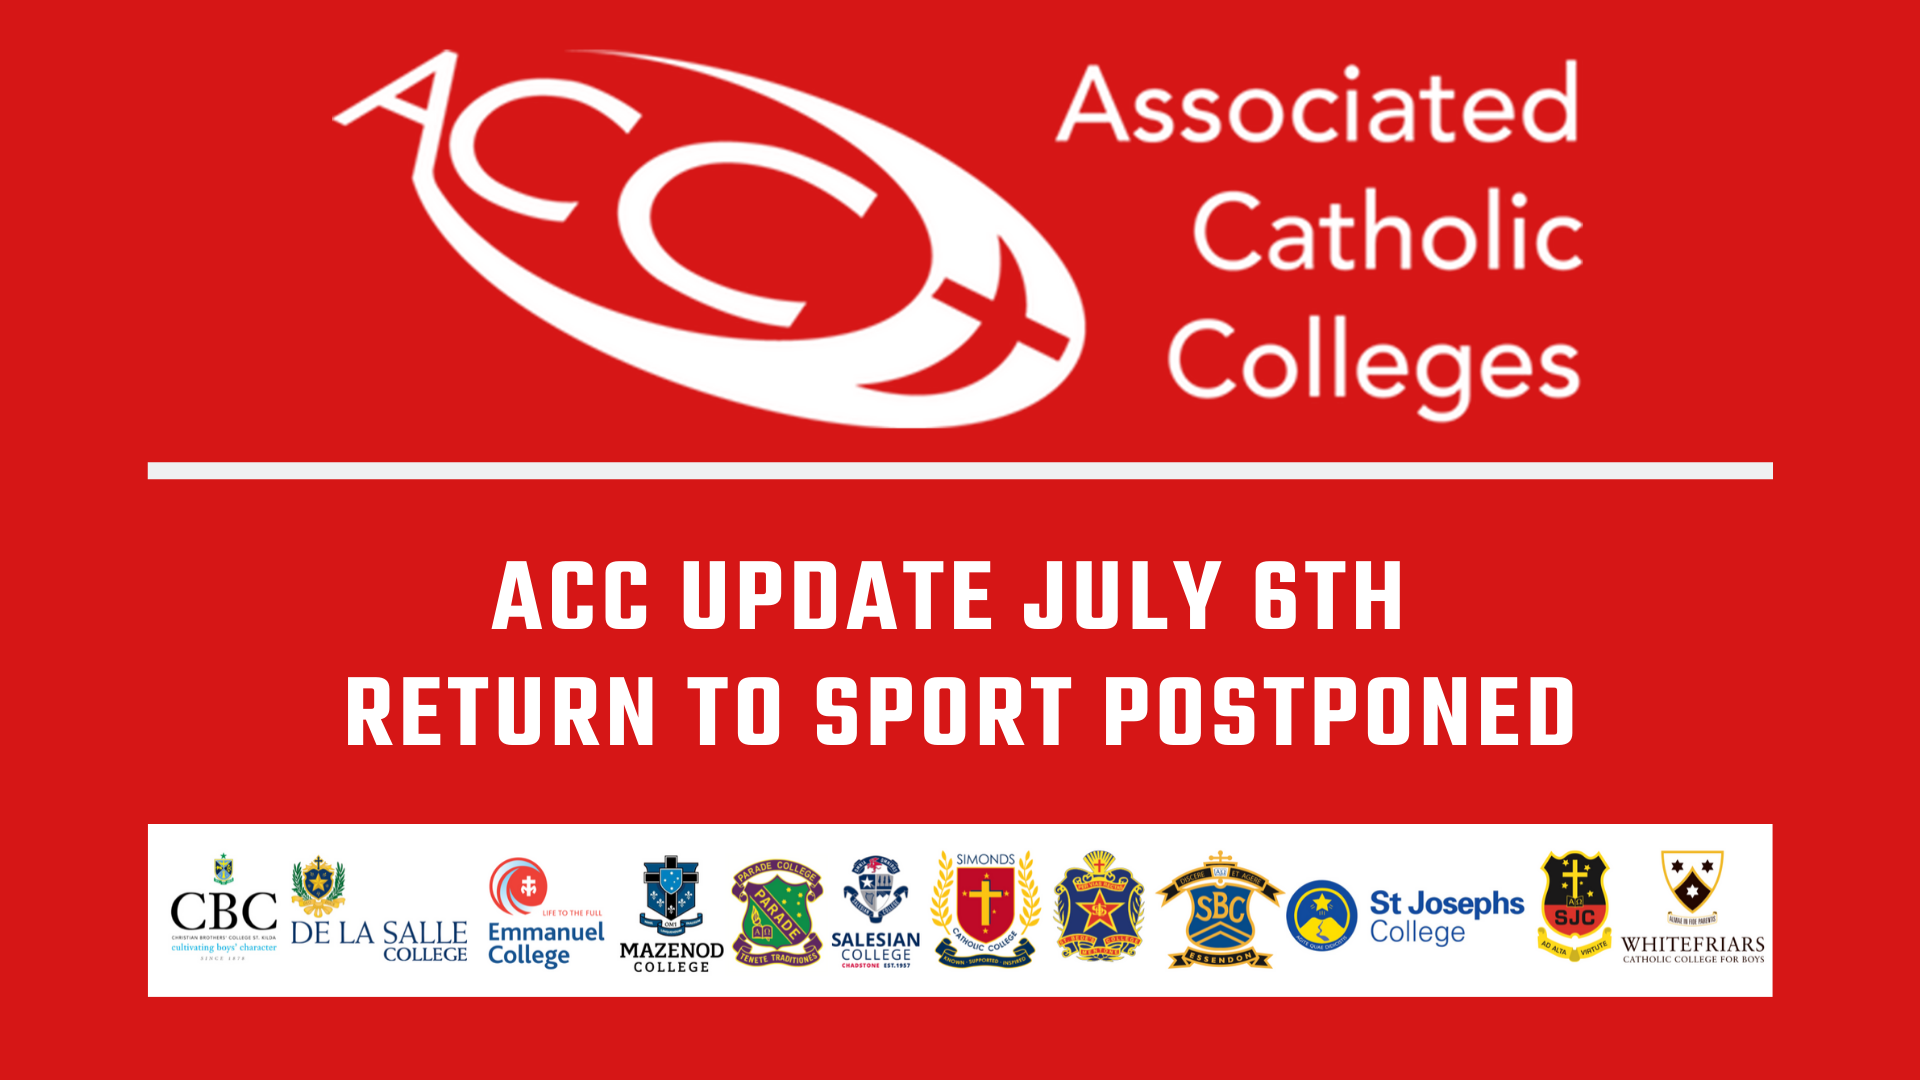 RETURN TO SPORT POSTPONED